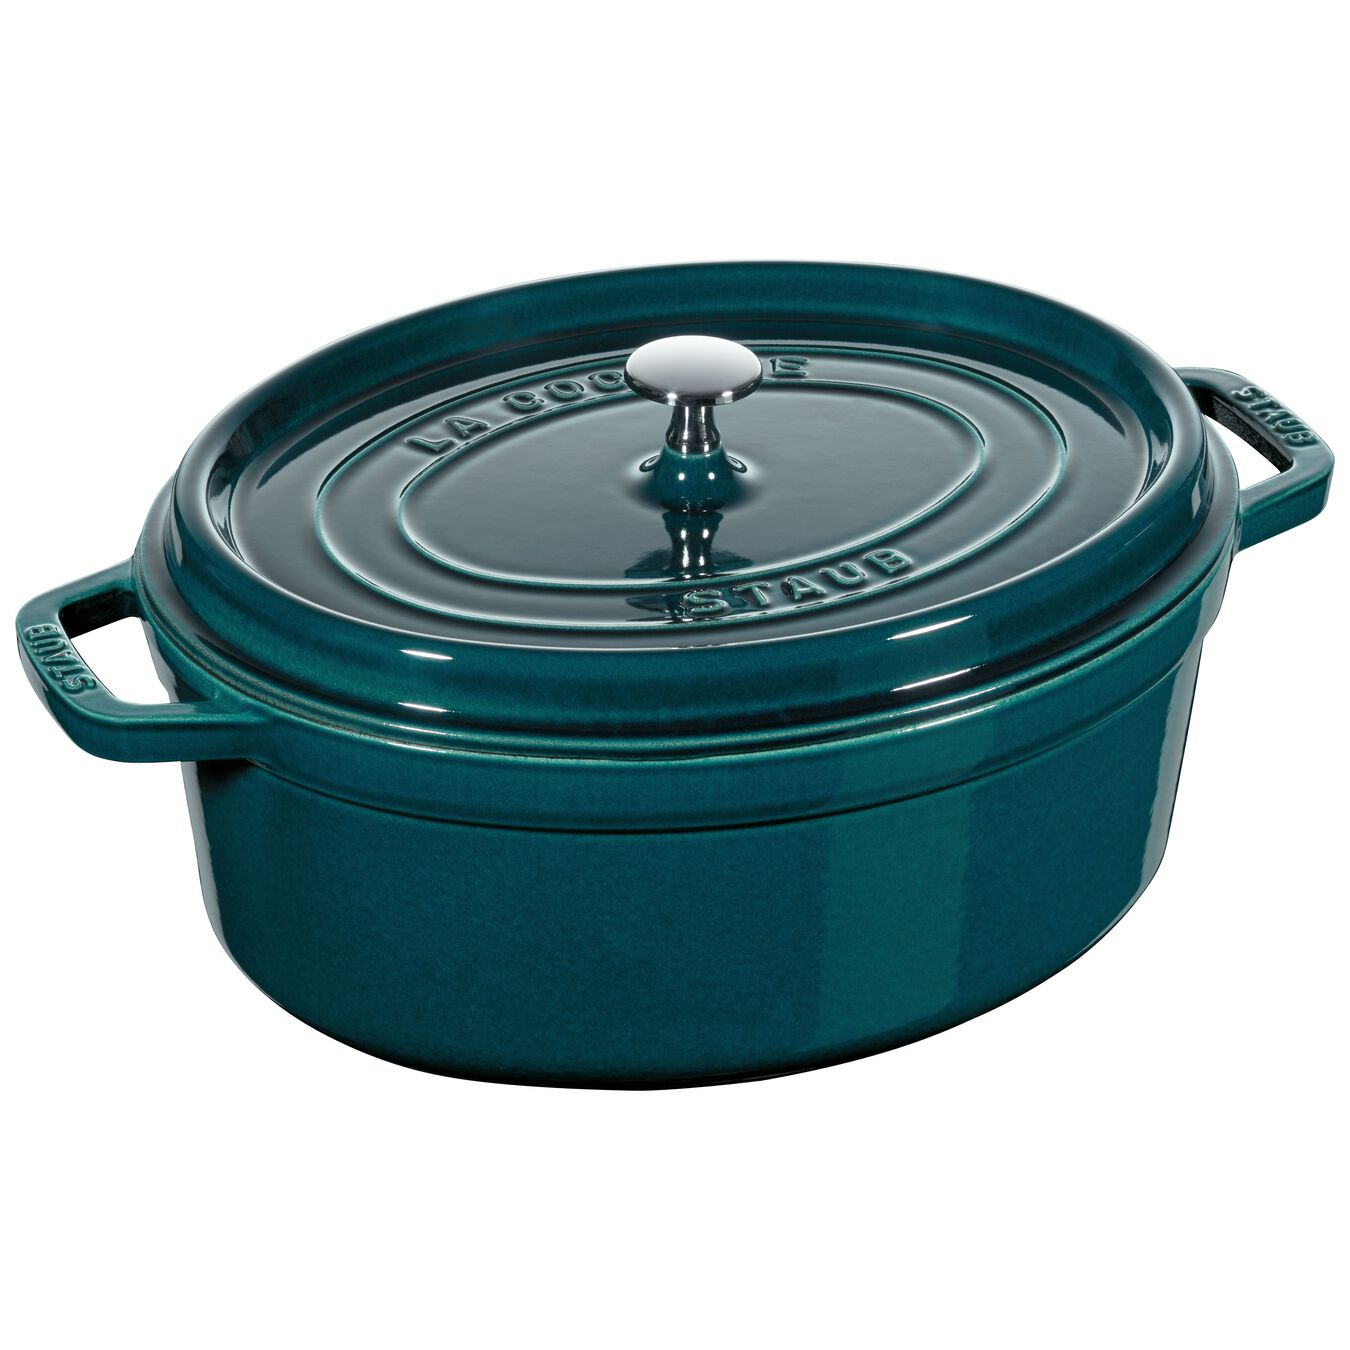 5.75-qt Oval Cocotte - Visual Imperfections - La Mer,,large 1